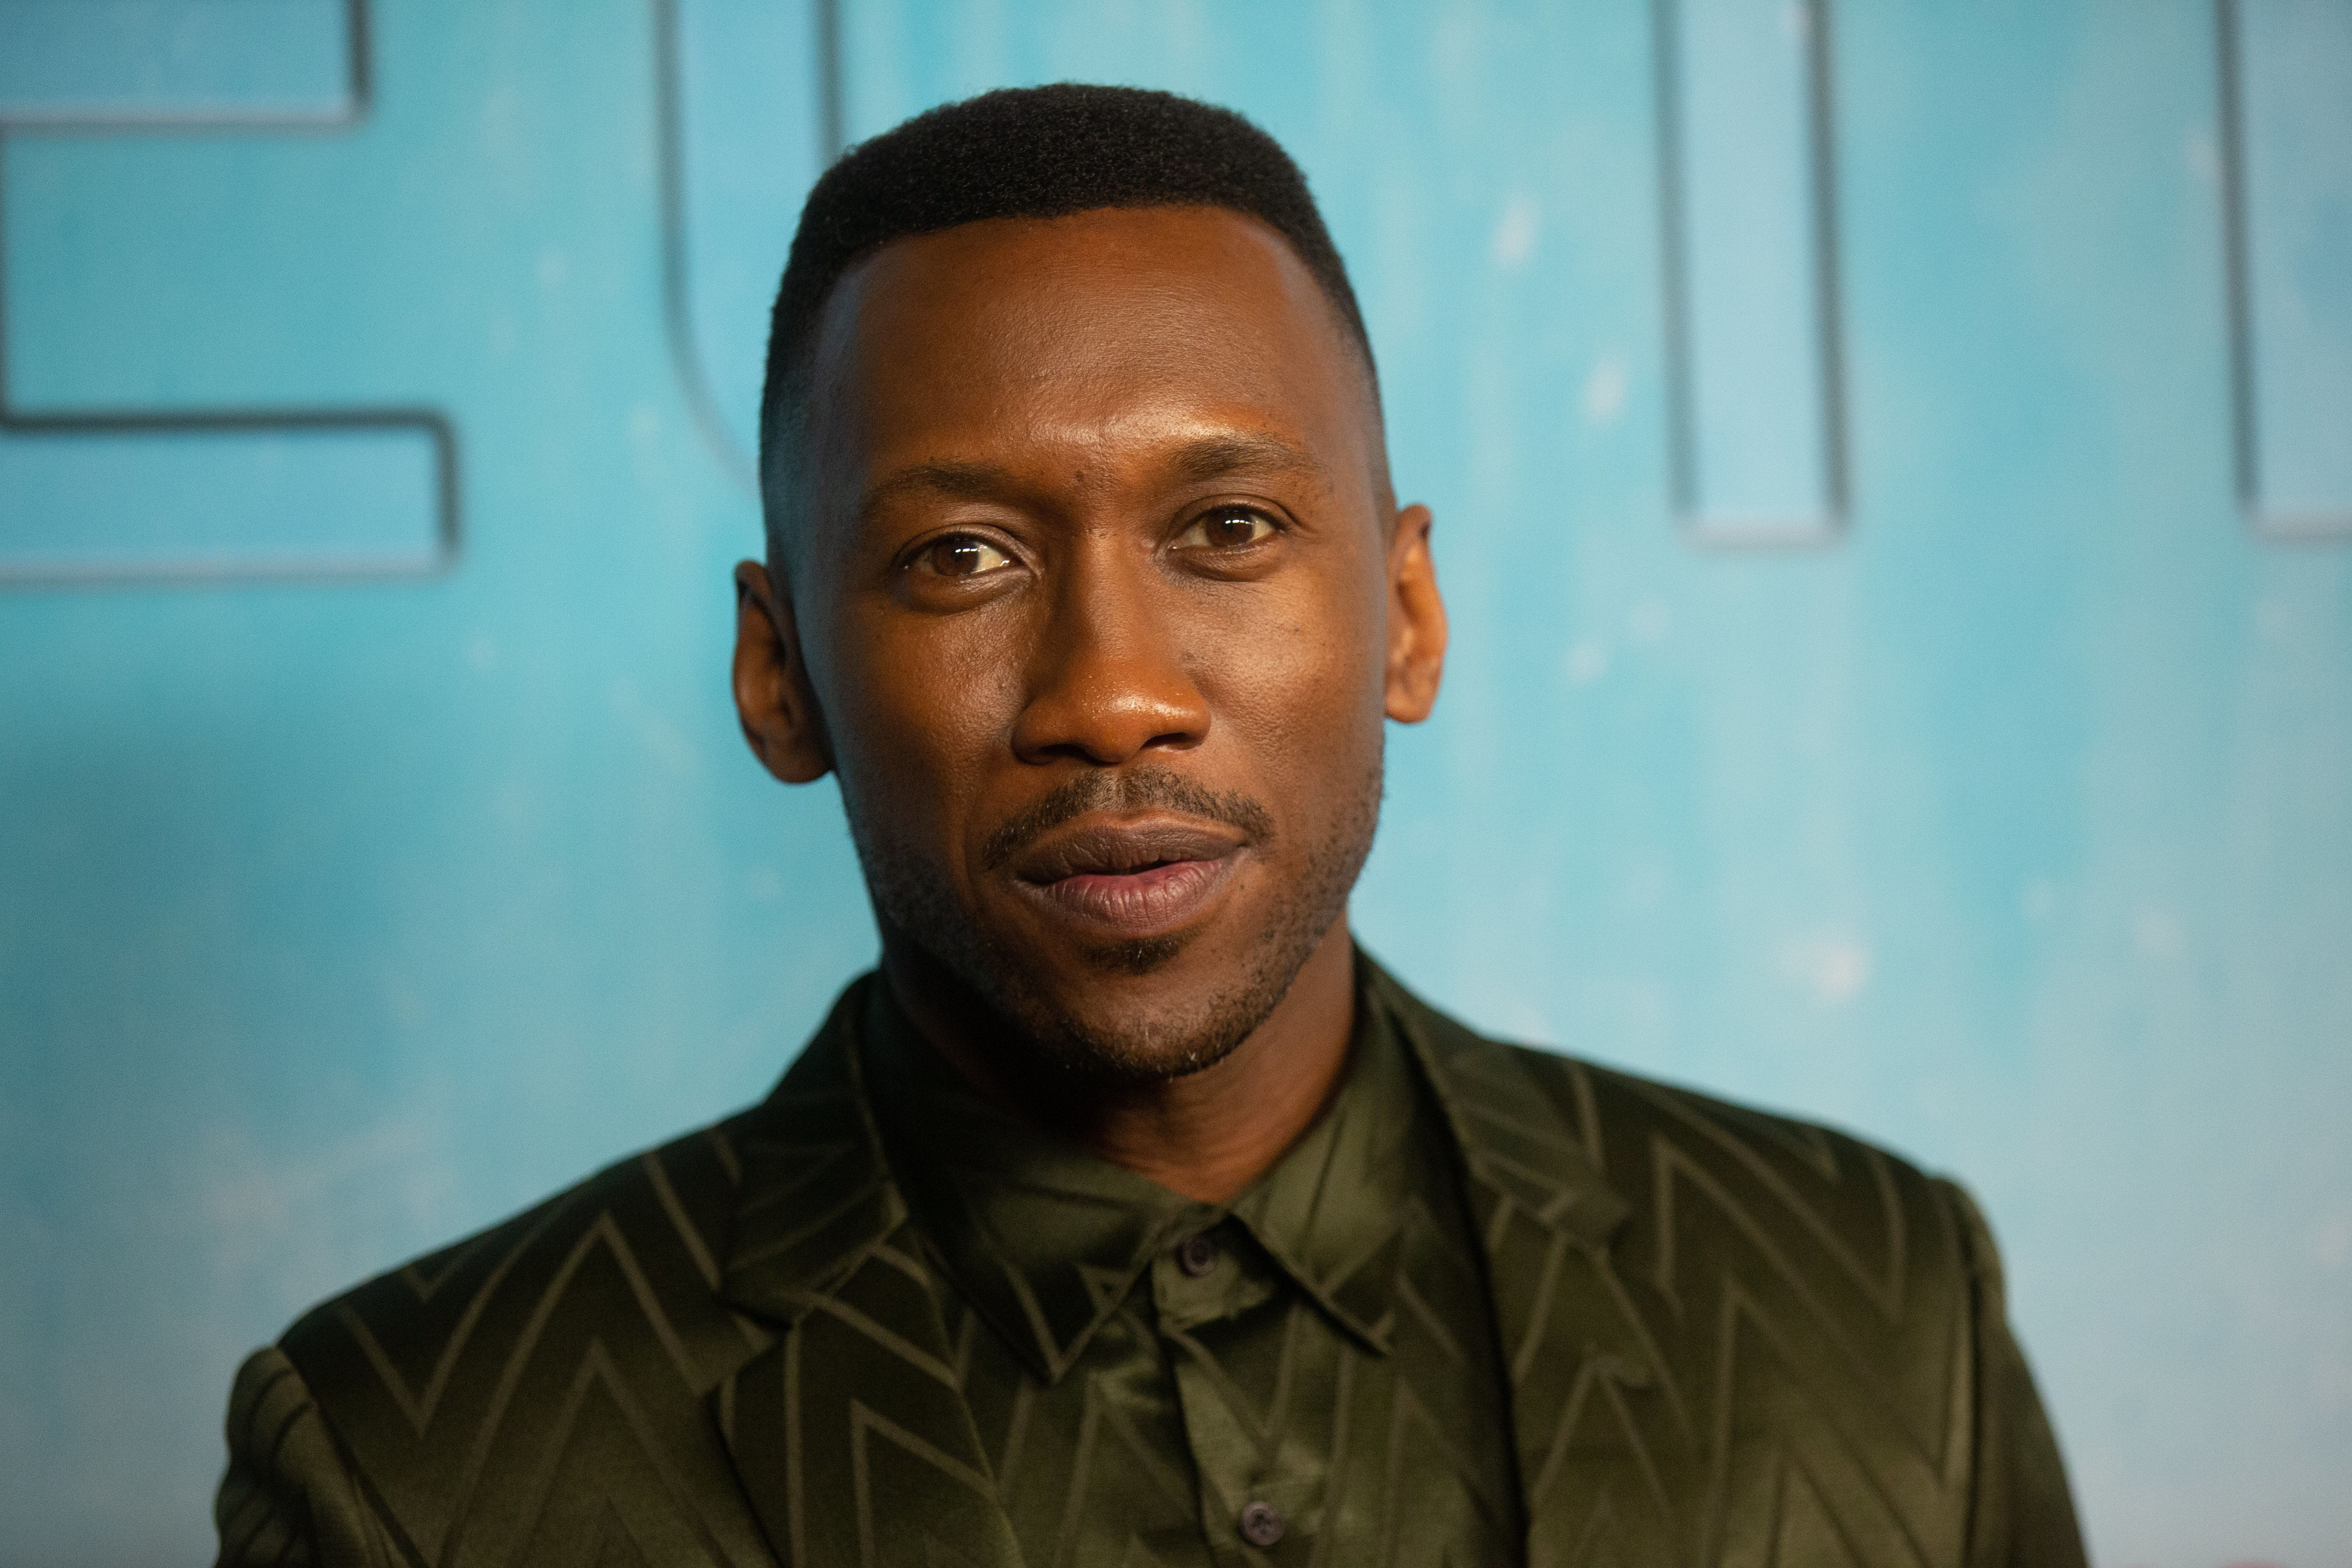 Mahershala Ali Talks Balancing Work To Support His Wife's Time For Her